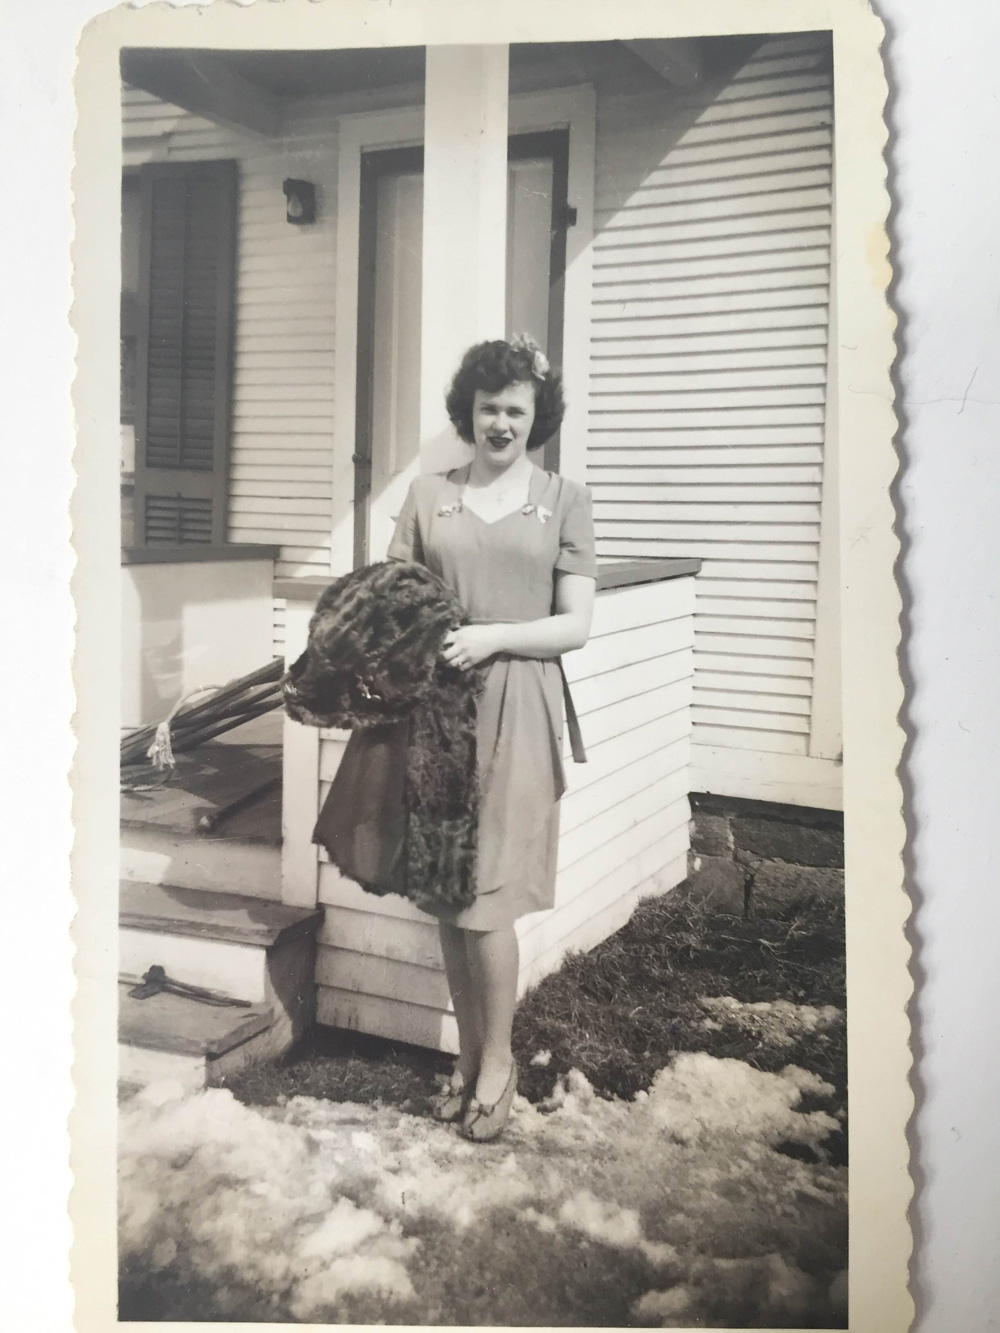 My grandma in the mid-'40s